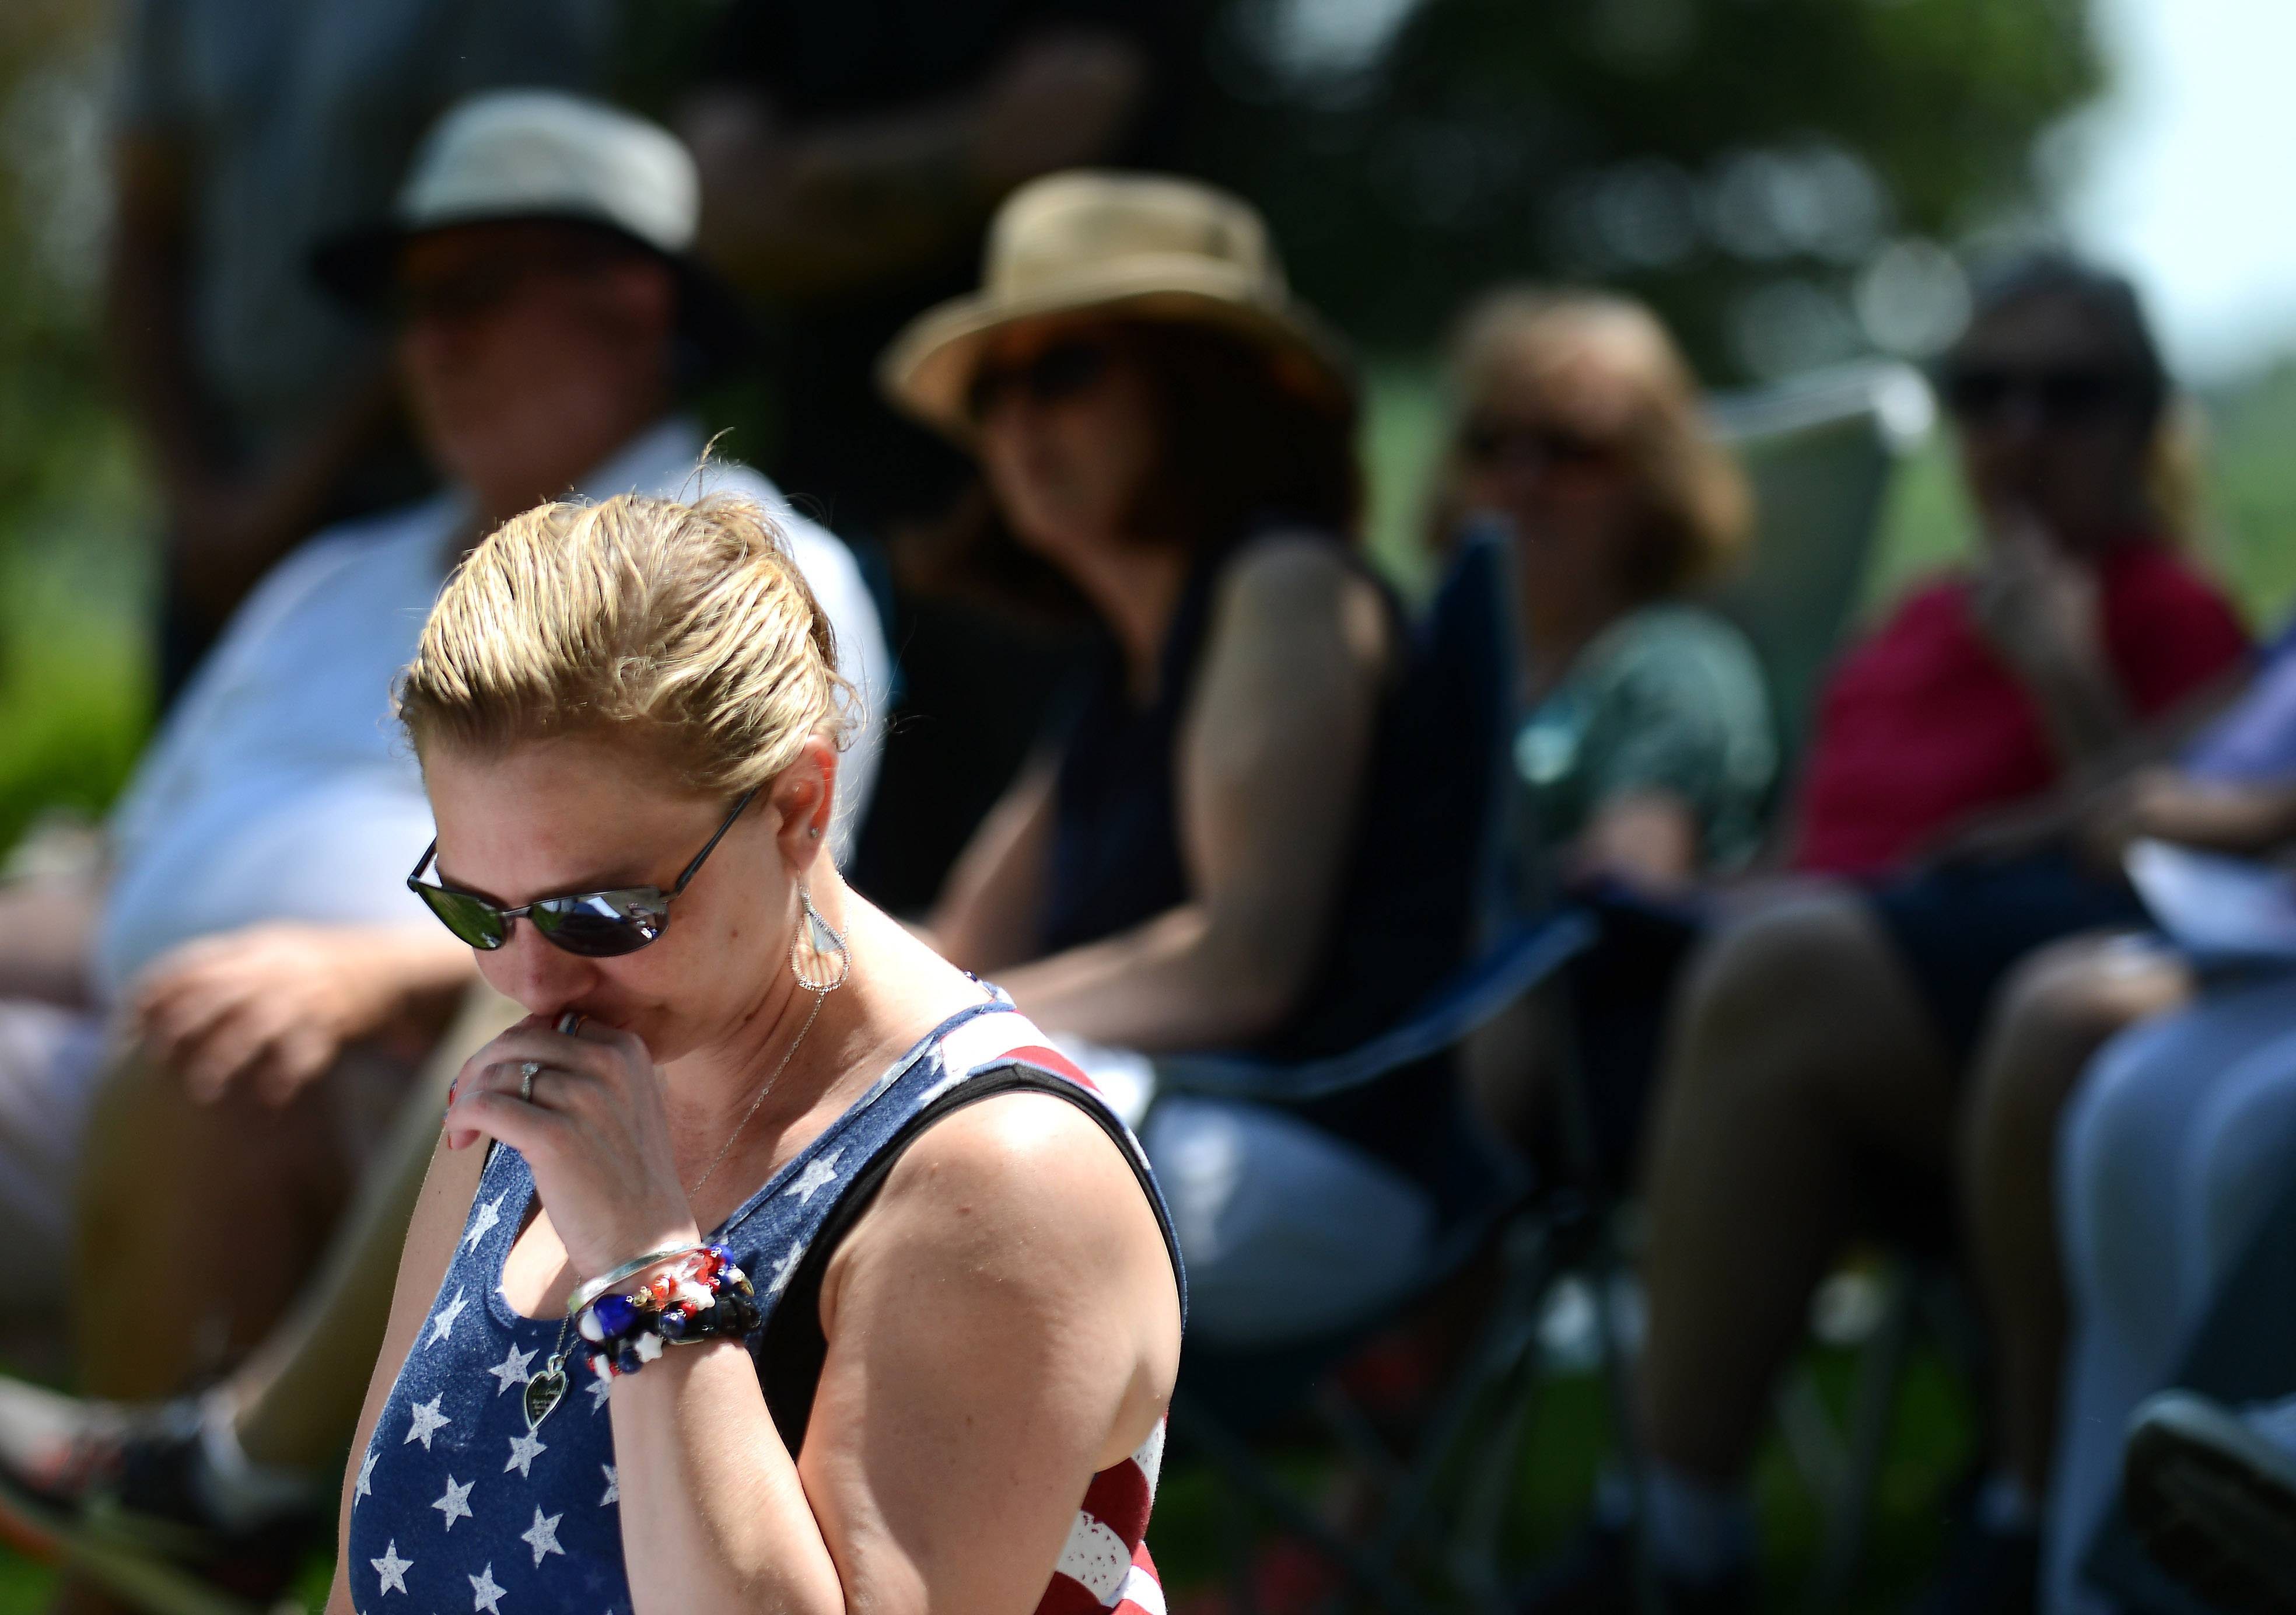 Brenda Terry of Carpentersville gets choked up during the annual West Dundee Memorial Day program at River Valley Memorial Gardens Monday. Her grandfather, a World War II veteran, recently passed and is buried at the cemetery. Her brother is serving in the Army.